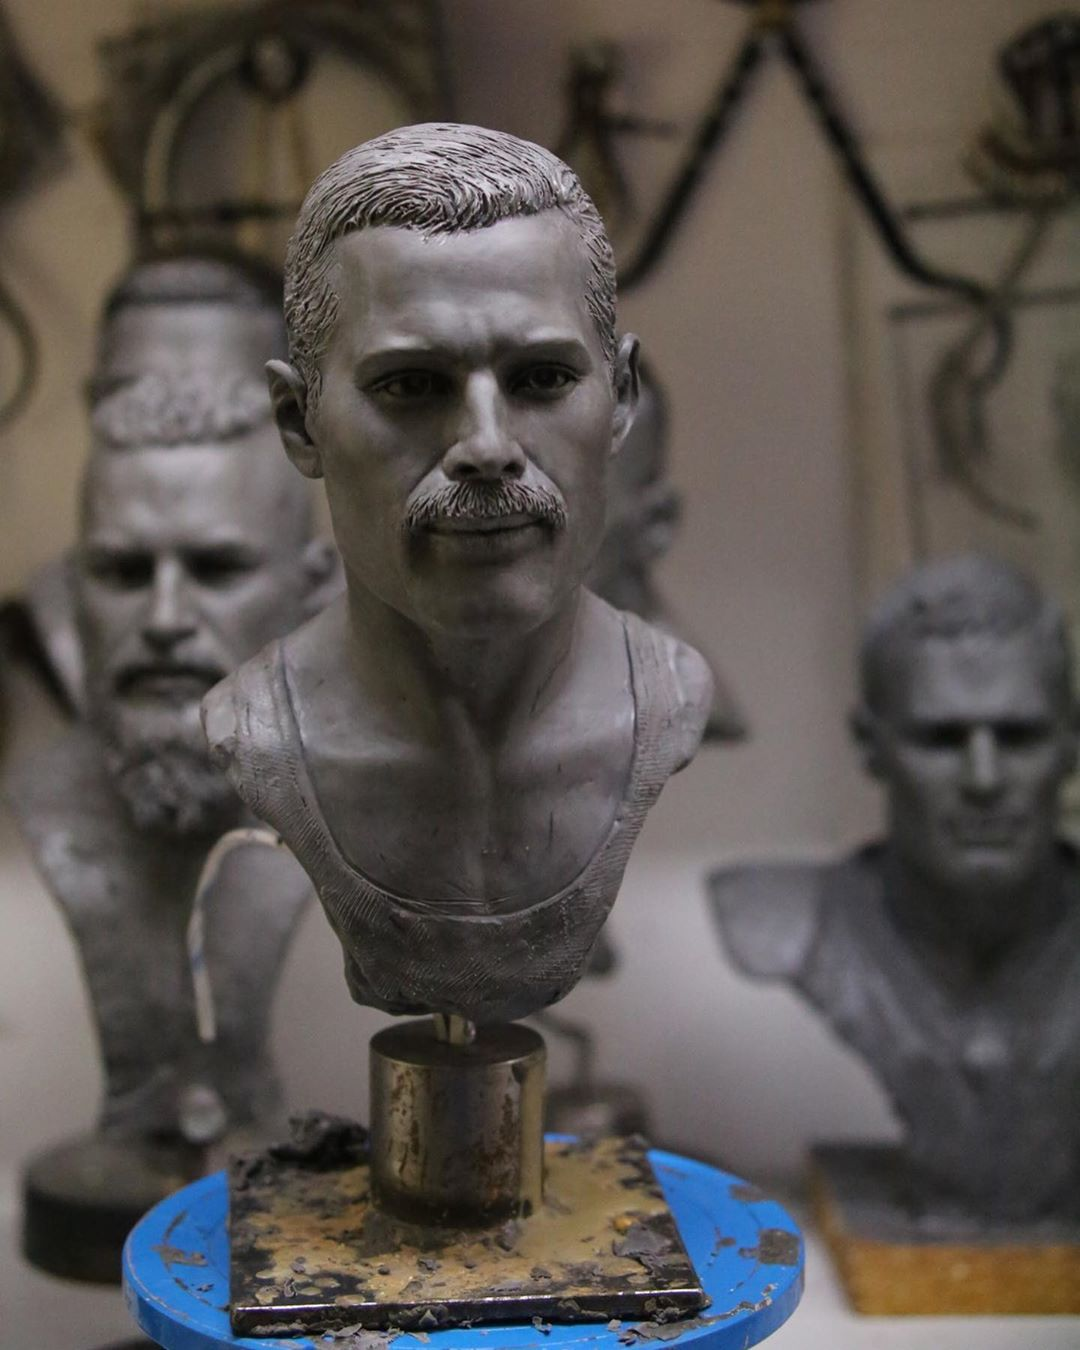 Self-Taught Sculptor Gains World Recognition For Stunning Bronze Sculptures 9